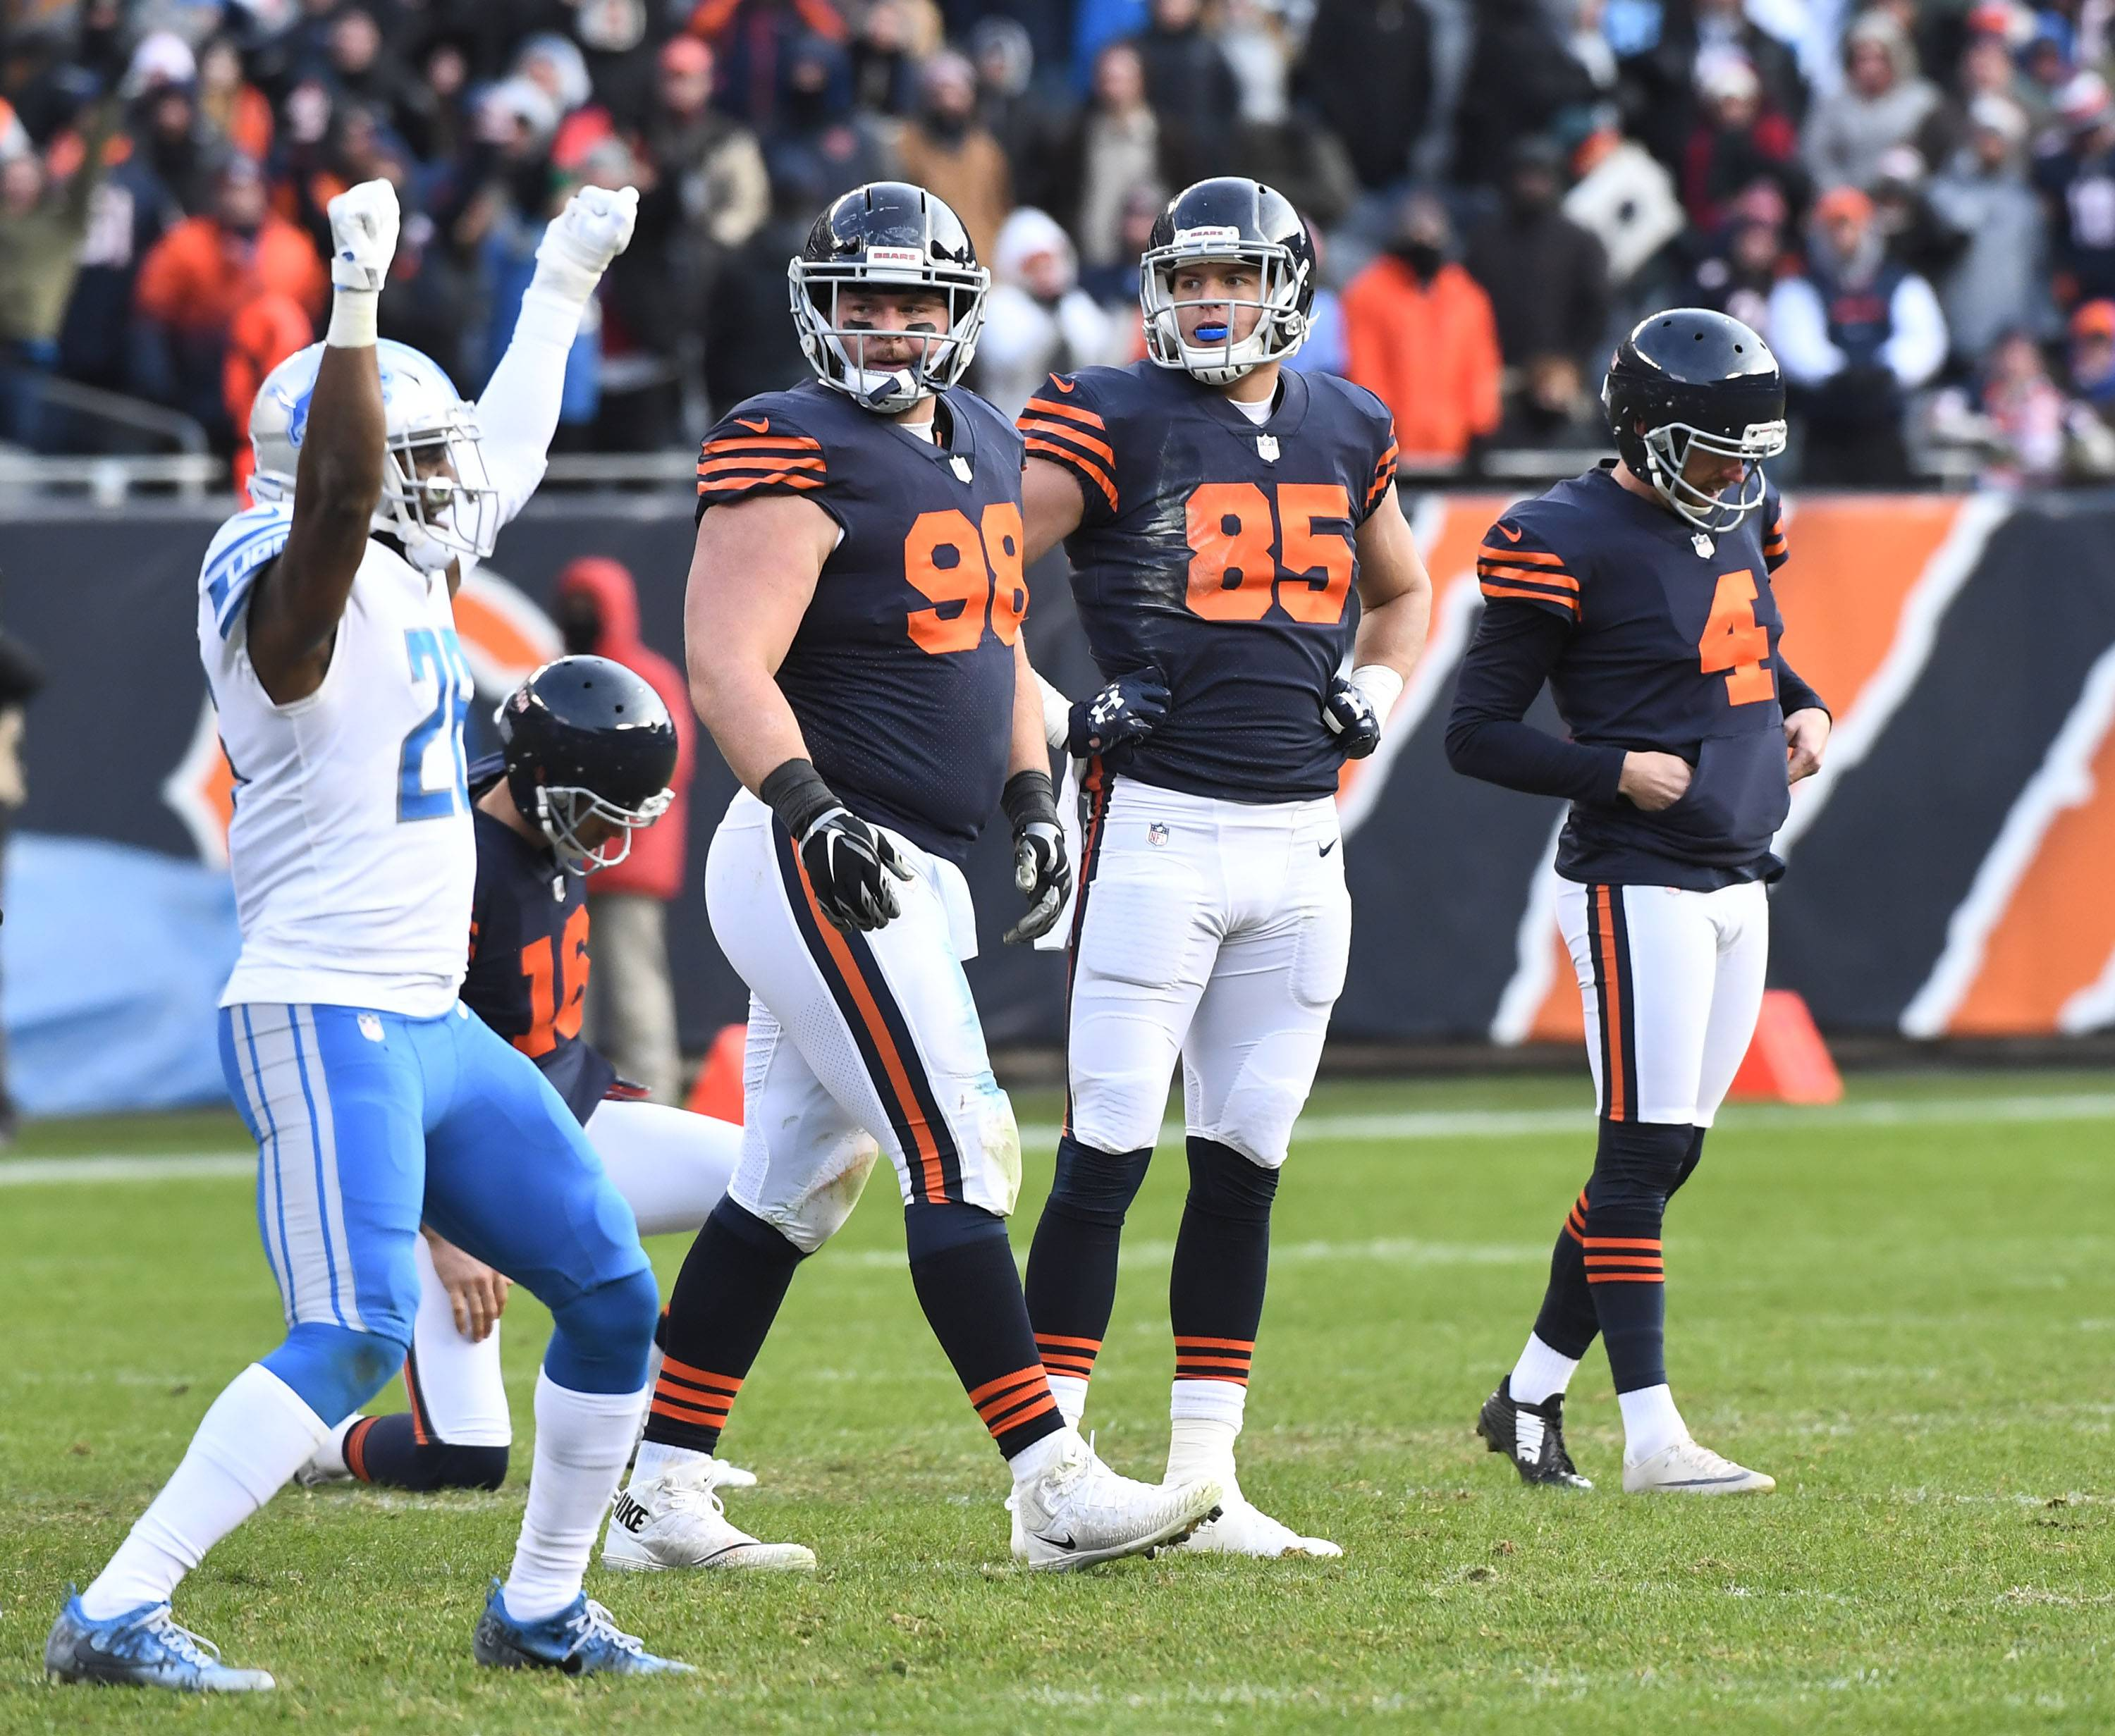 Chicago Bears kicker Connor Barth bows his head as teammates Mitch Unrein and Daniel Brown watch Detroit Lions safety Don Carey celebrate the missed field goal with only seconds left in regulation Sunday at Soldier Field in Chicago.